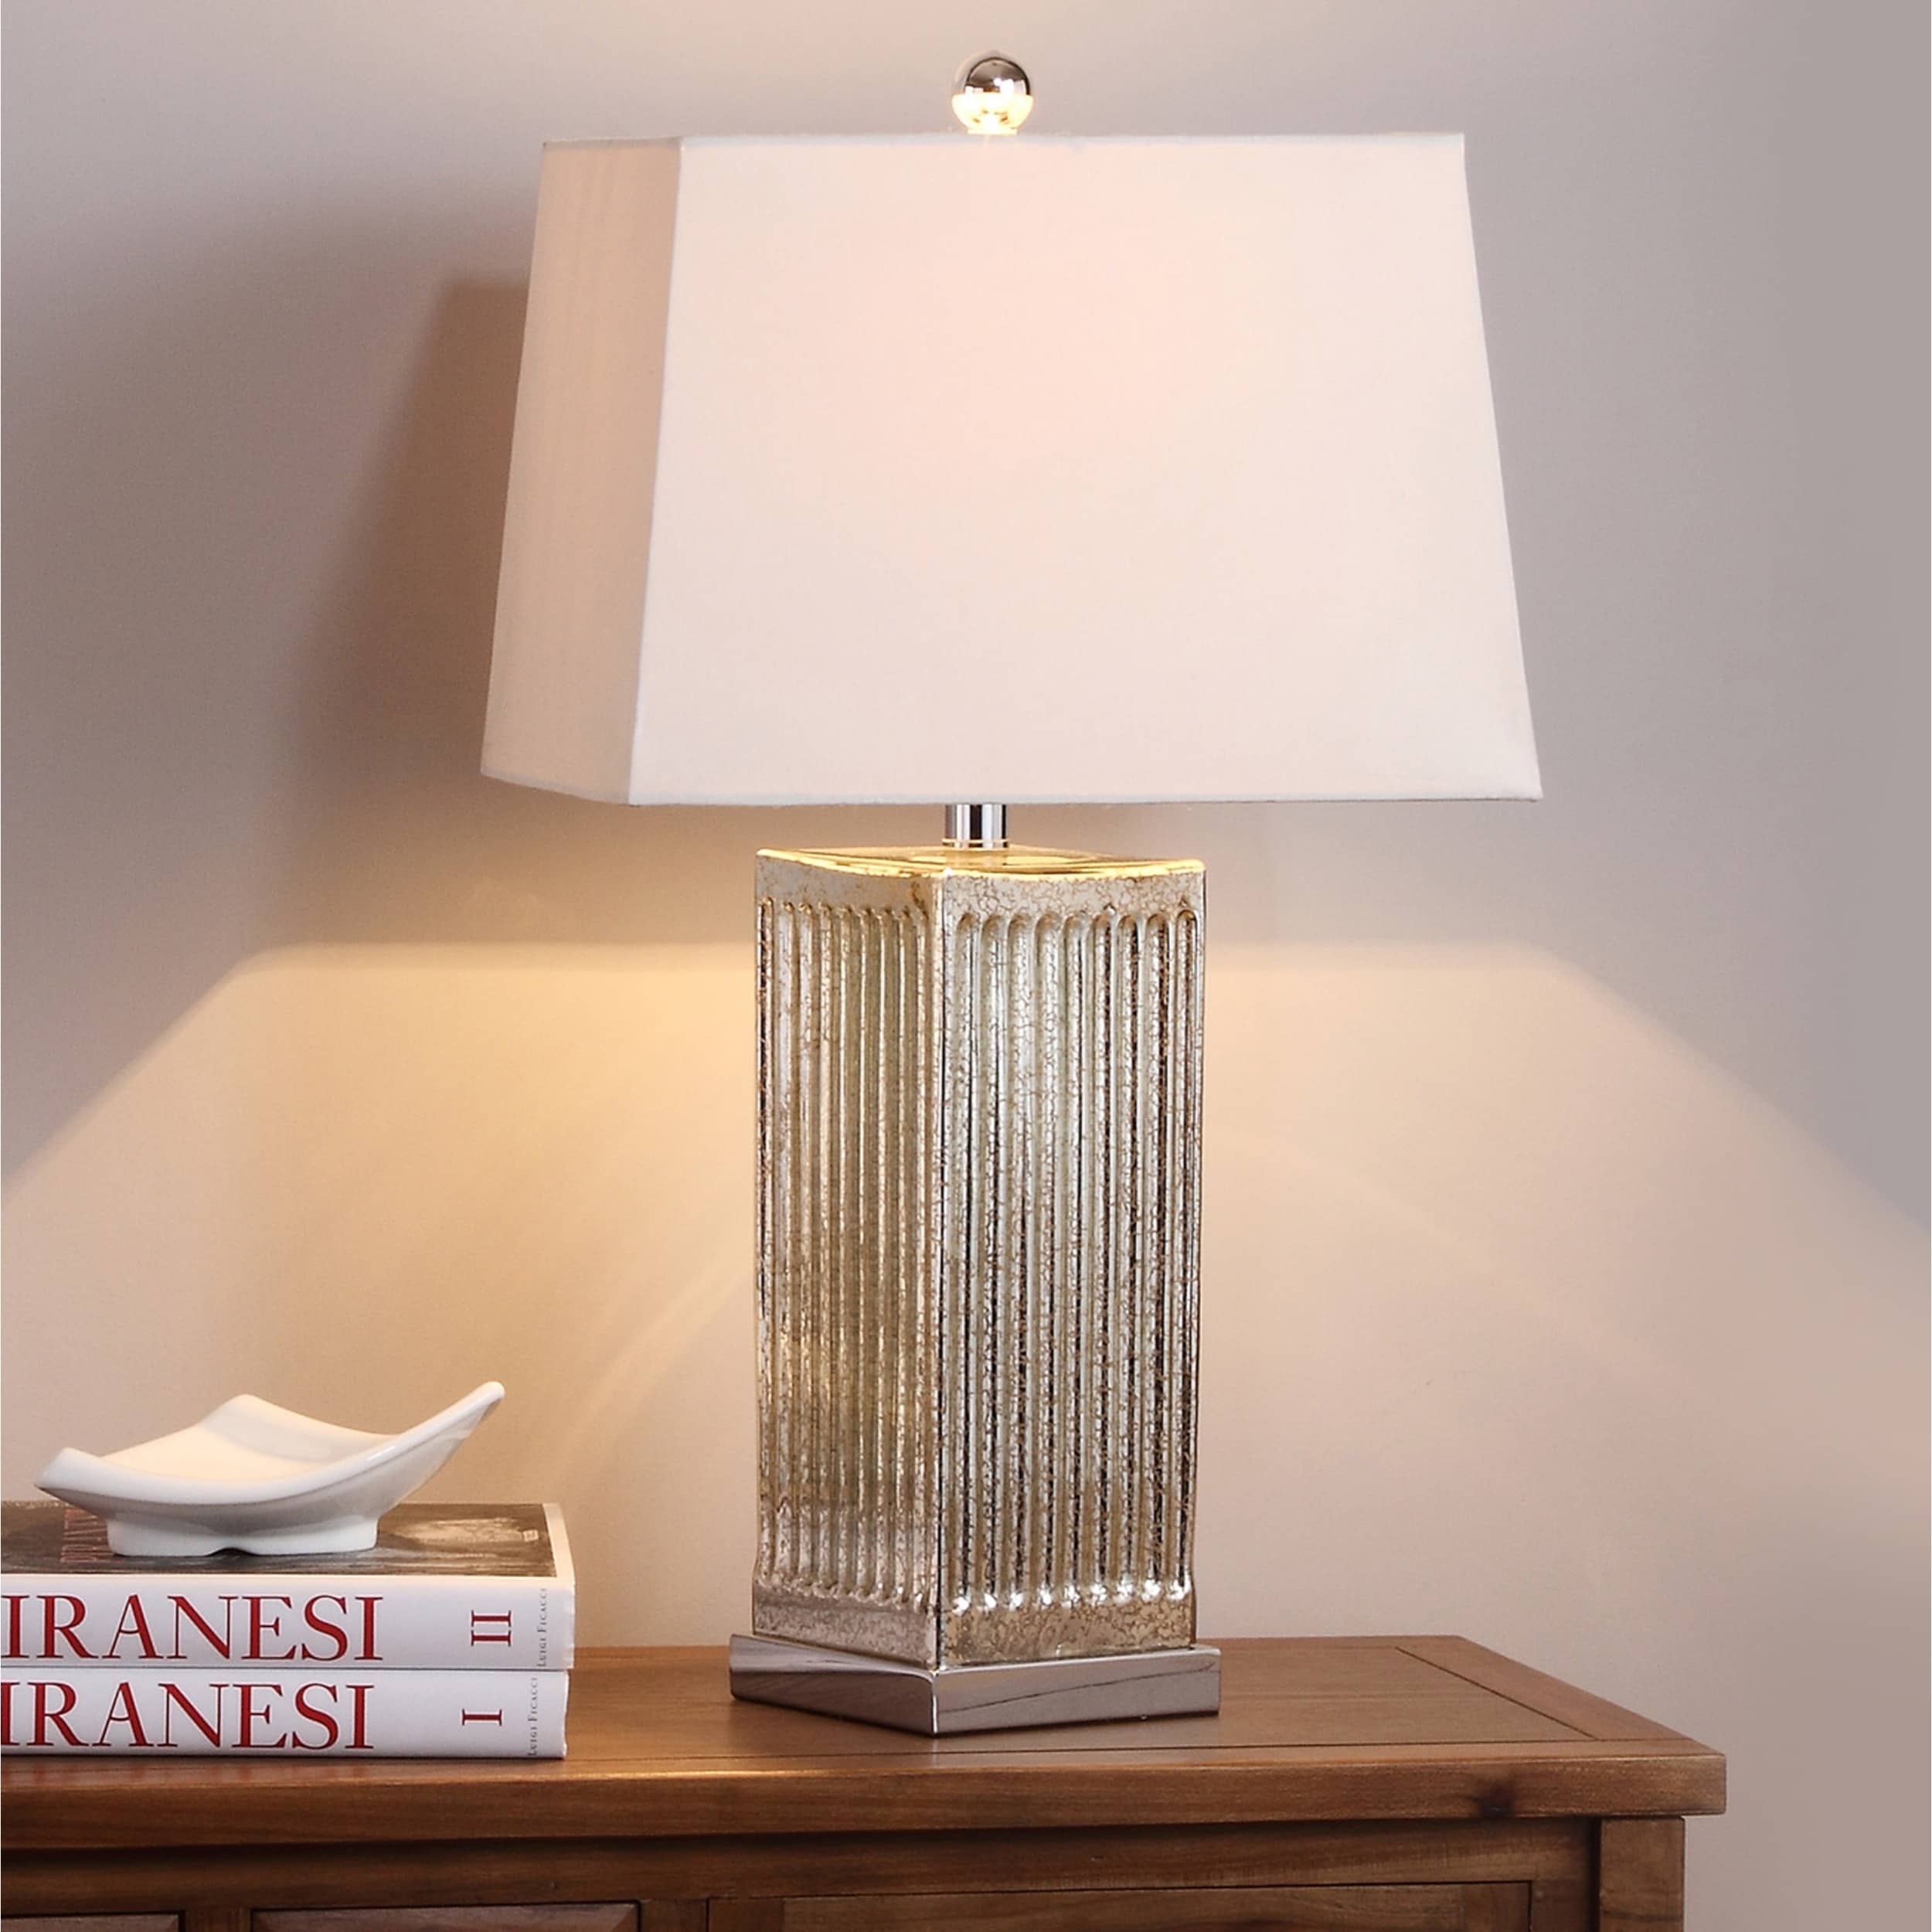 Safavieh lighting 27 inch clear rock crystal table lamp set of 2 safavieh lighting 27 inch clear rock crystal table lamp set of 2 free shipping today overstock 16240901 mozeypictures Gallery